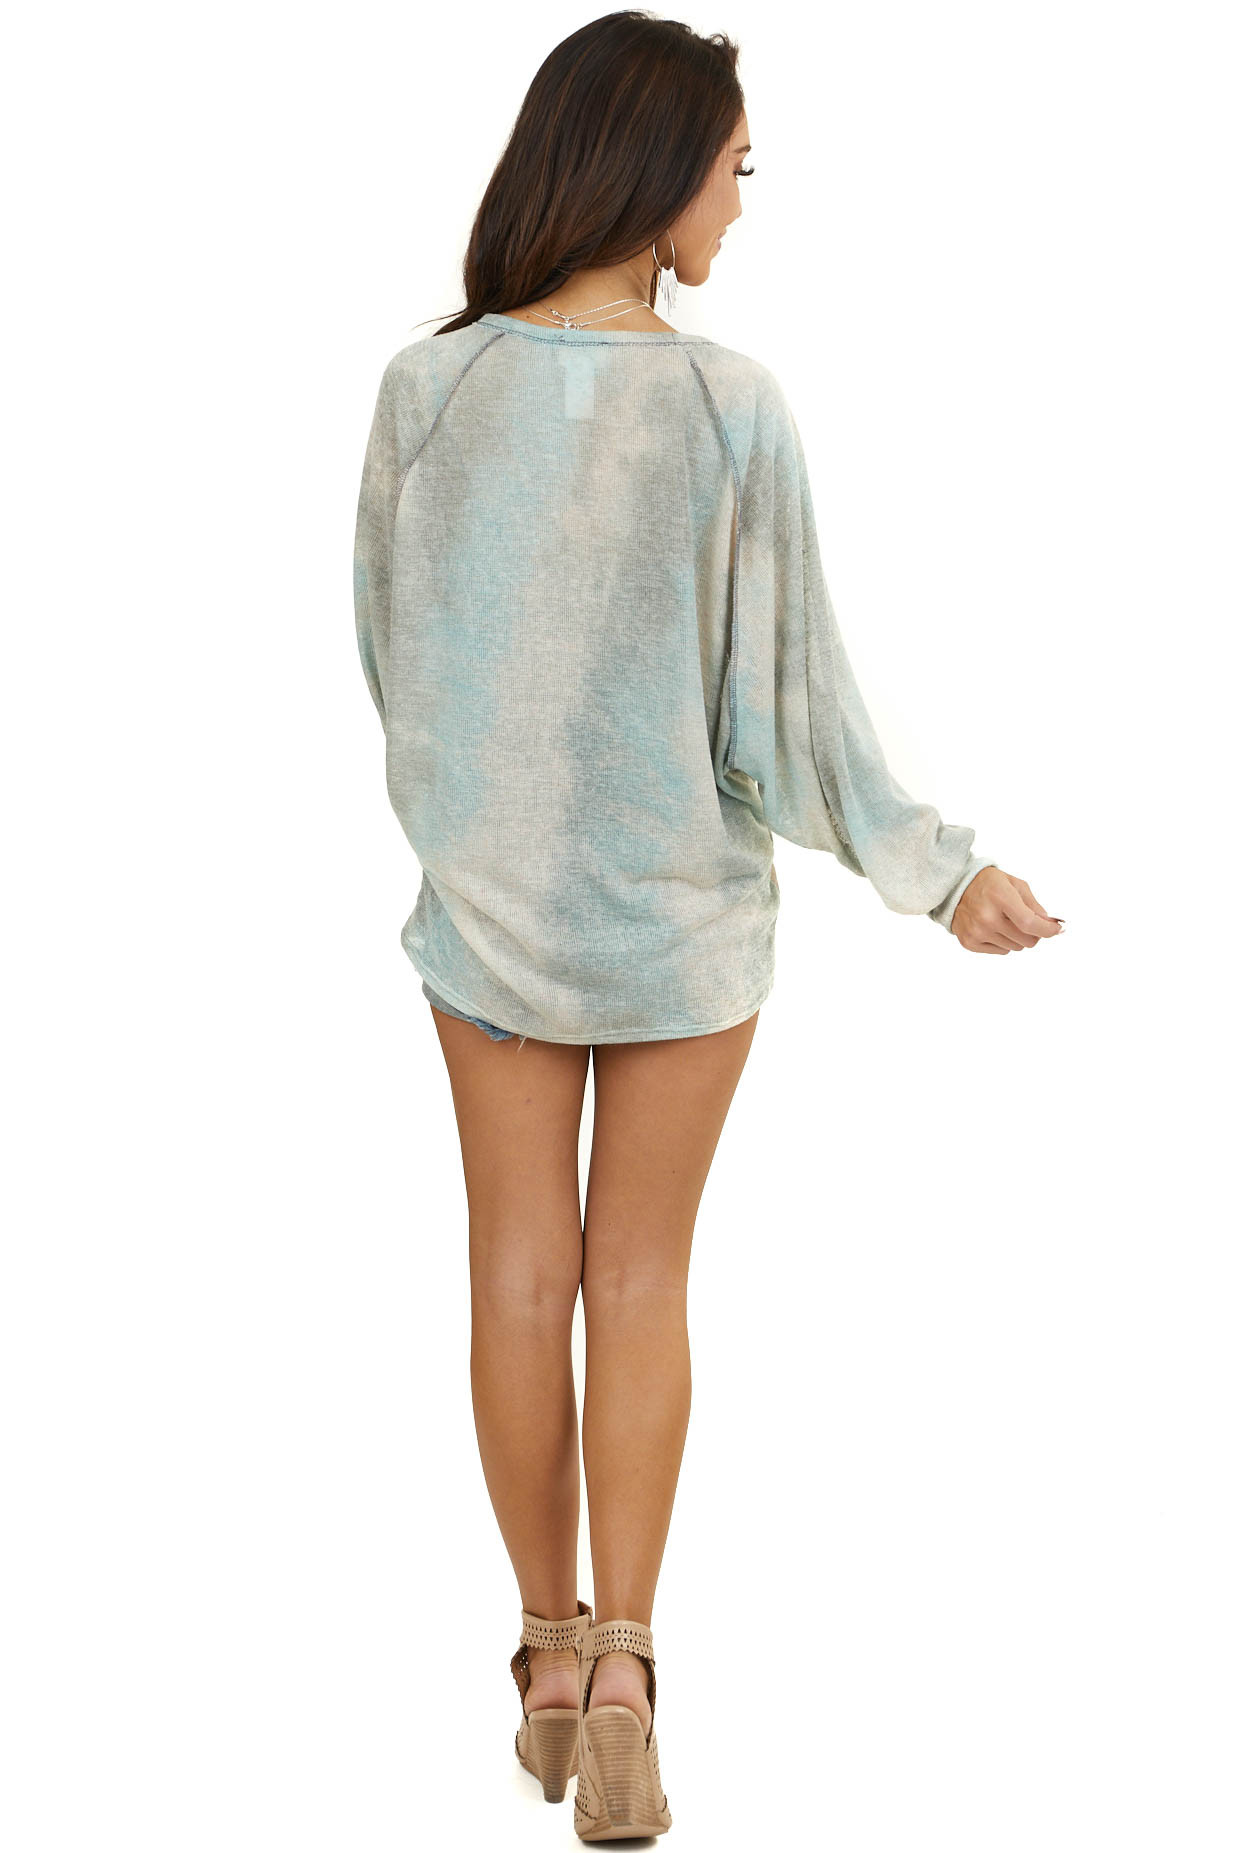 Sage and Beige Tie Dye Loose Knit Top with Long Sleeves